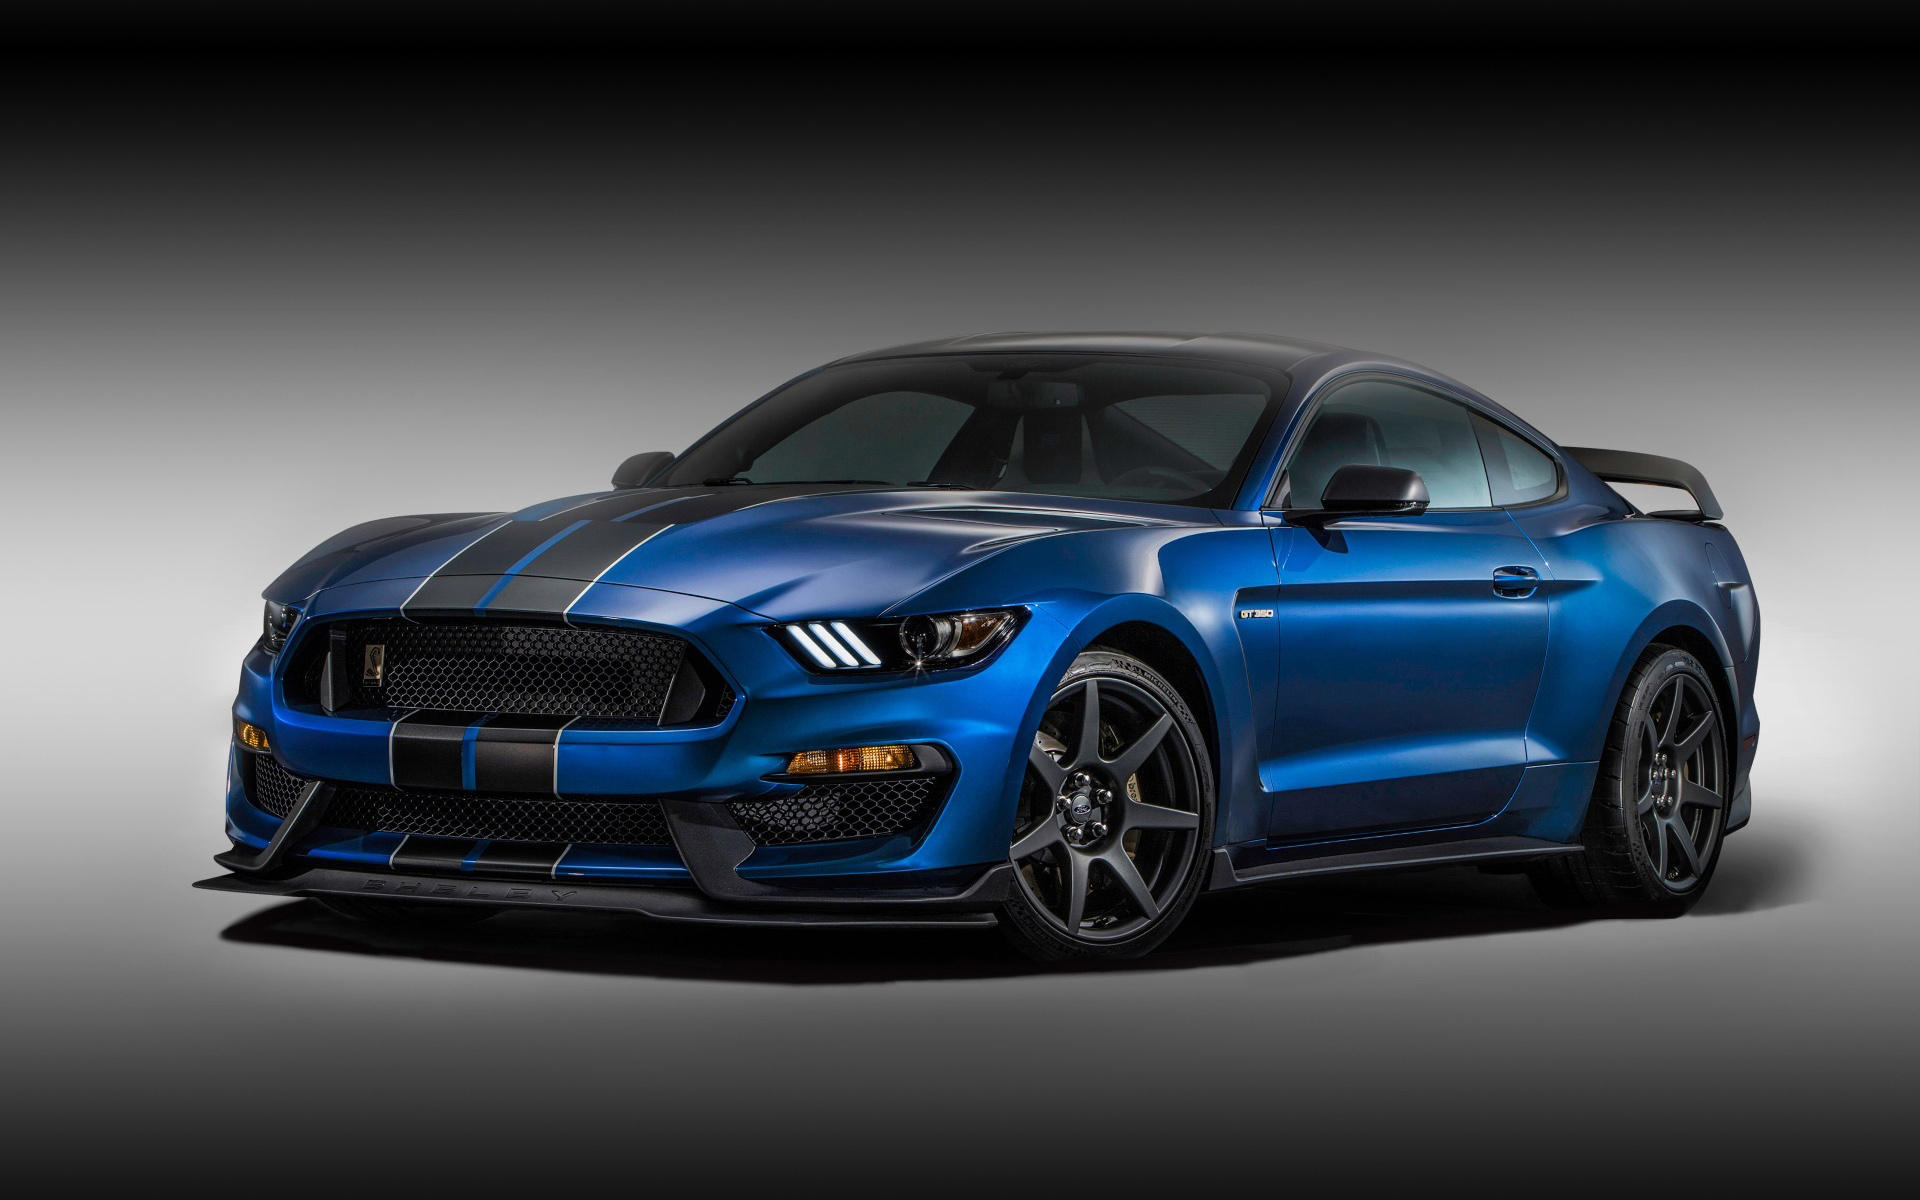 1920x1200 - Shelby Mustang GT 350 Wallpapers 19